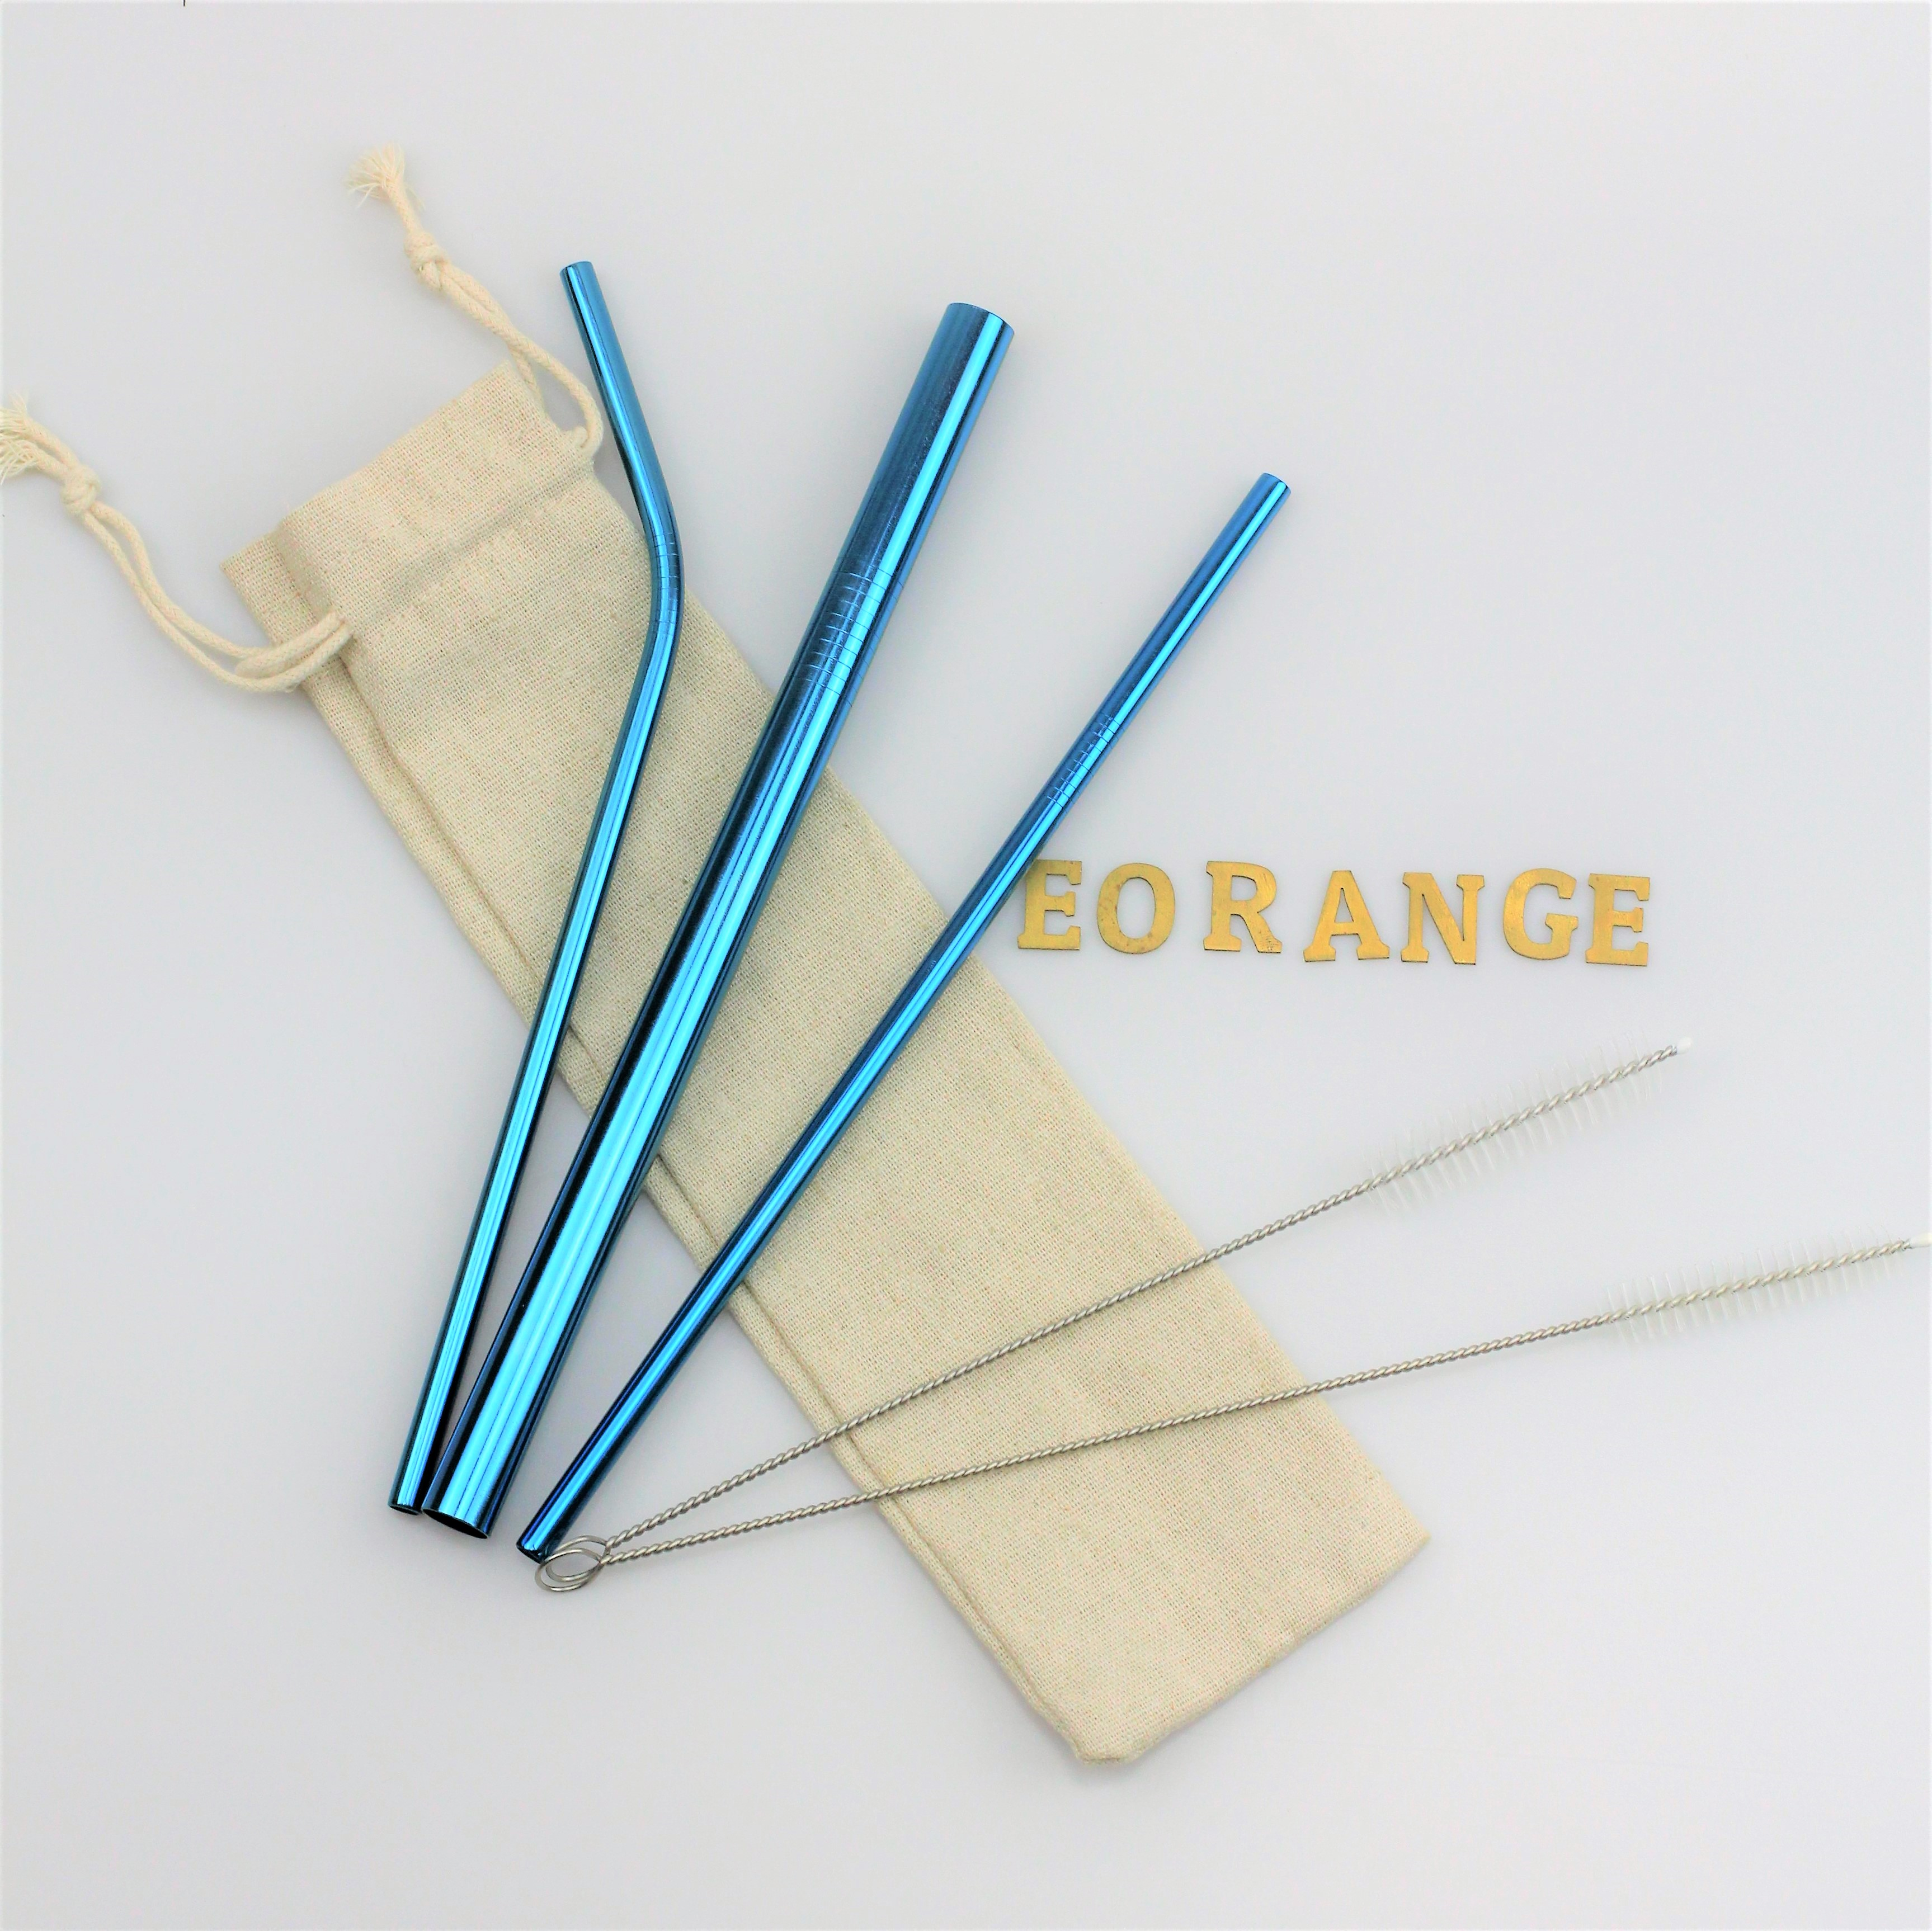 Customise print Reusable Stainless Steel Metal Straw Set logo singapore wholesale bulk eco-freindly